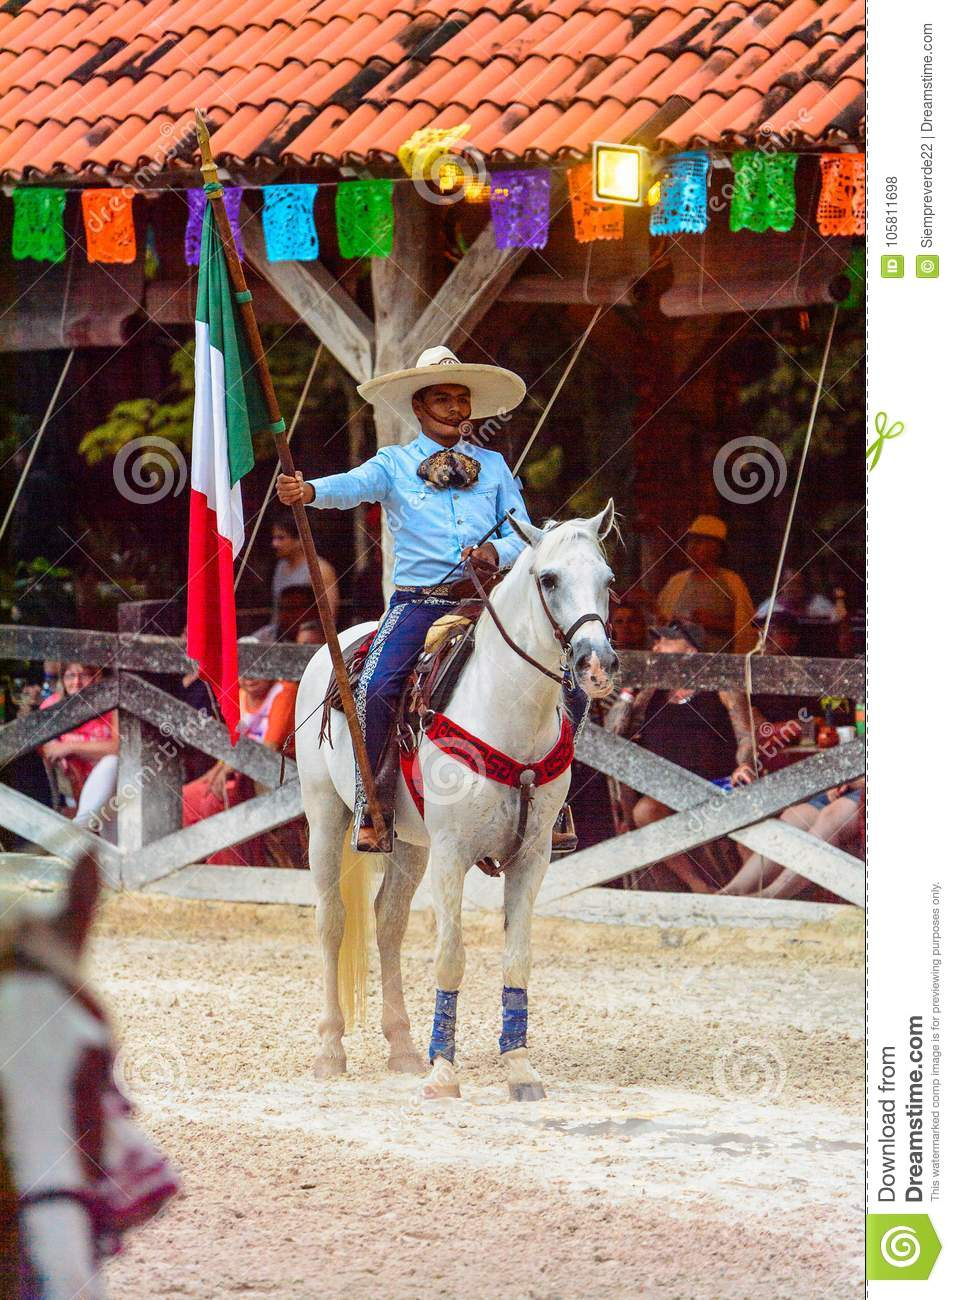 Horse show in Mexico editorial stock photo. Image of jump - 105811698